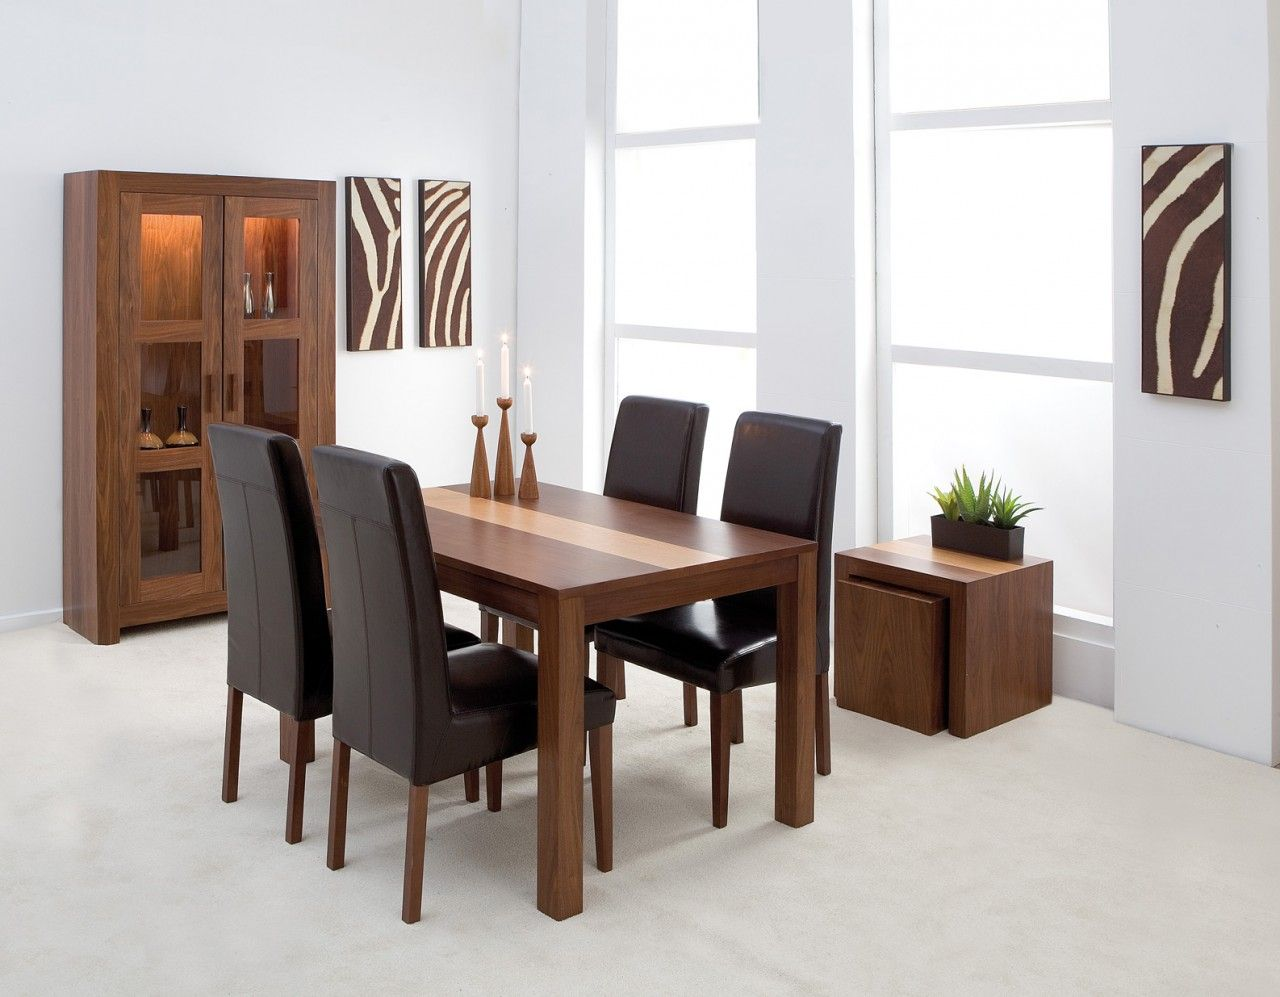 4 Chair Dining Table Set | 4 chair dining table, Small ...